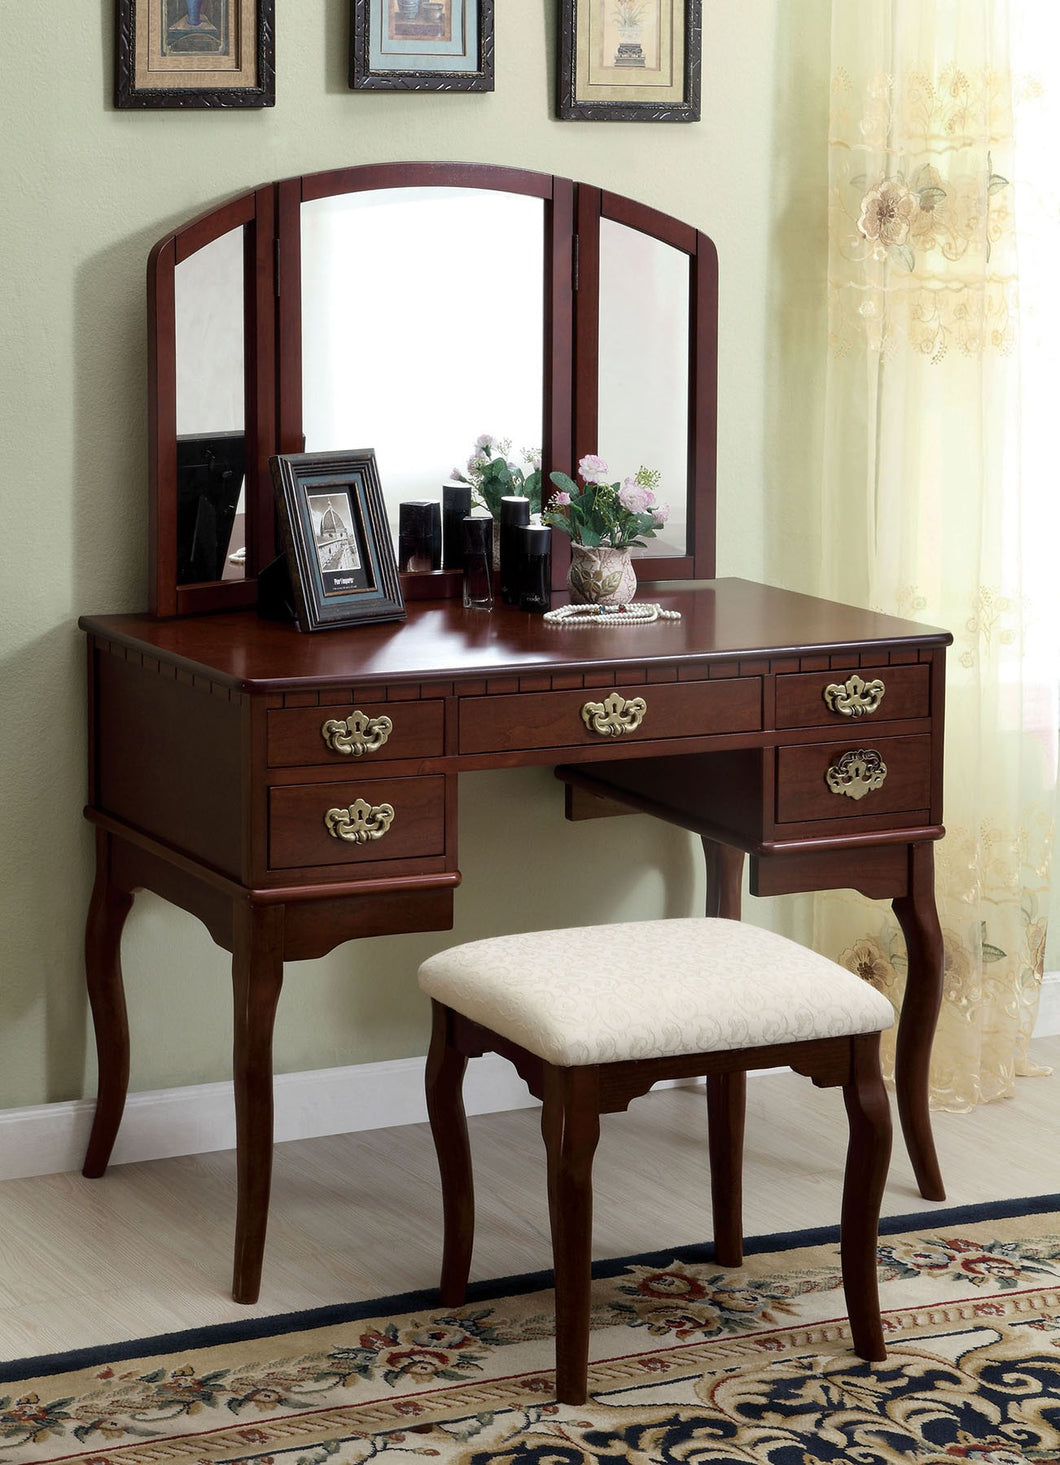 CM-DK6405CH Vanity Set - Ashland Cherry Traditional Vanity Table with Stool